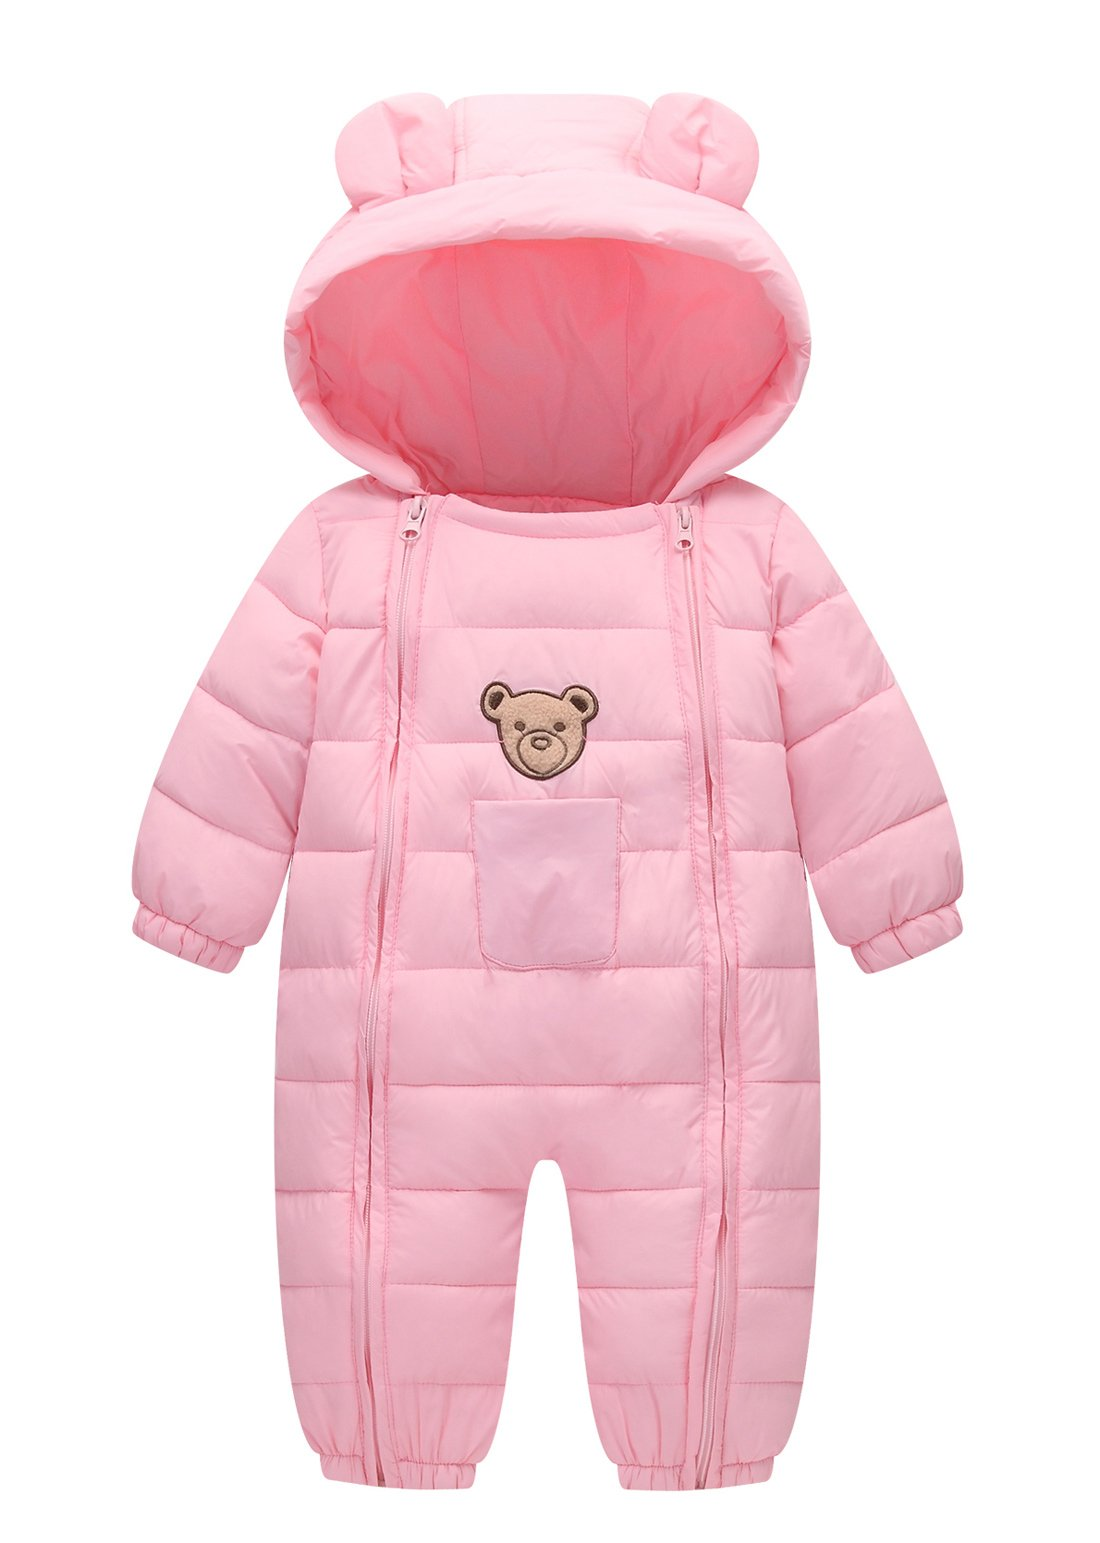 Infant Winter Warm Romper One Piece Hooded Coat Windproof Long Sleeve Jumpsuit Padded Down Snowsuit Soft Thicken Comfortable Outerwear Pink 3-9M by FEOYA